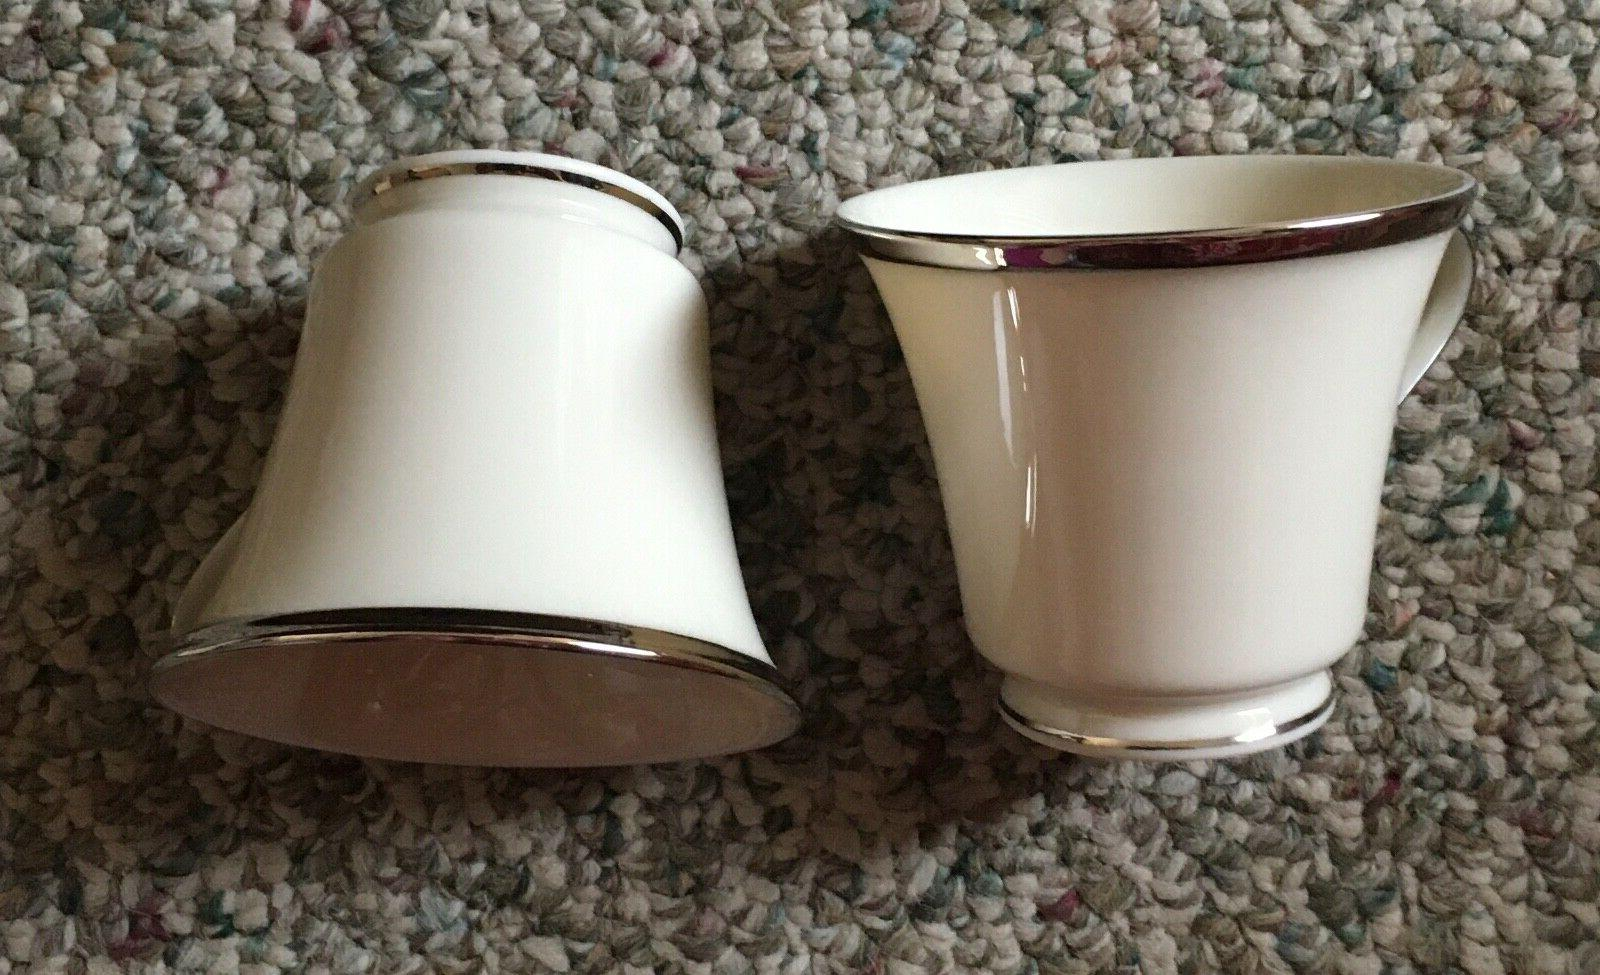 LOT OF Solitaire Platinum-Banded 5-Piece